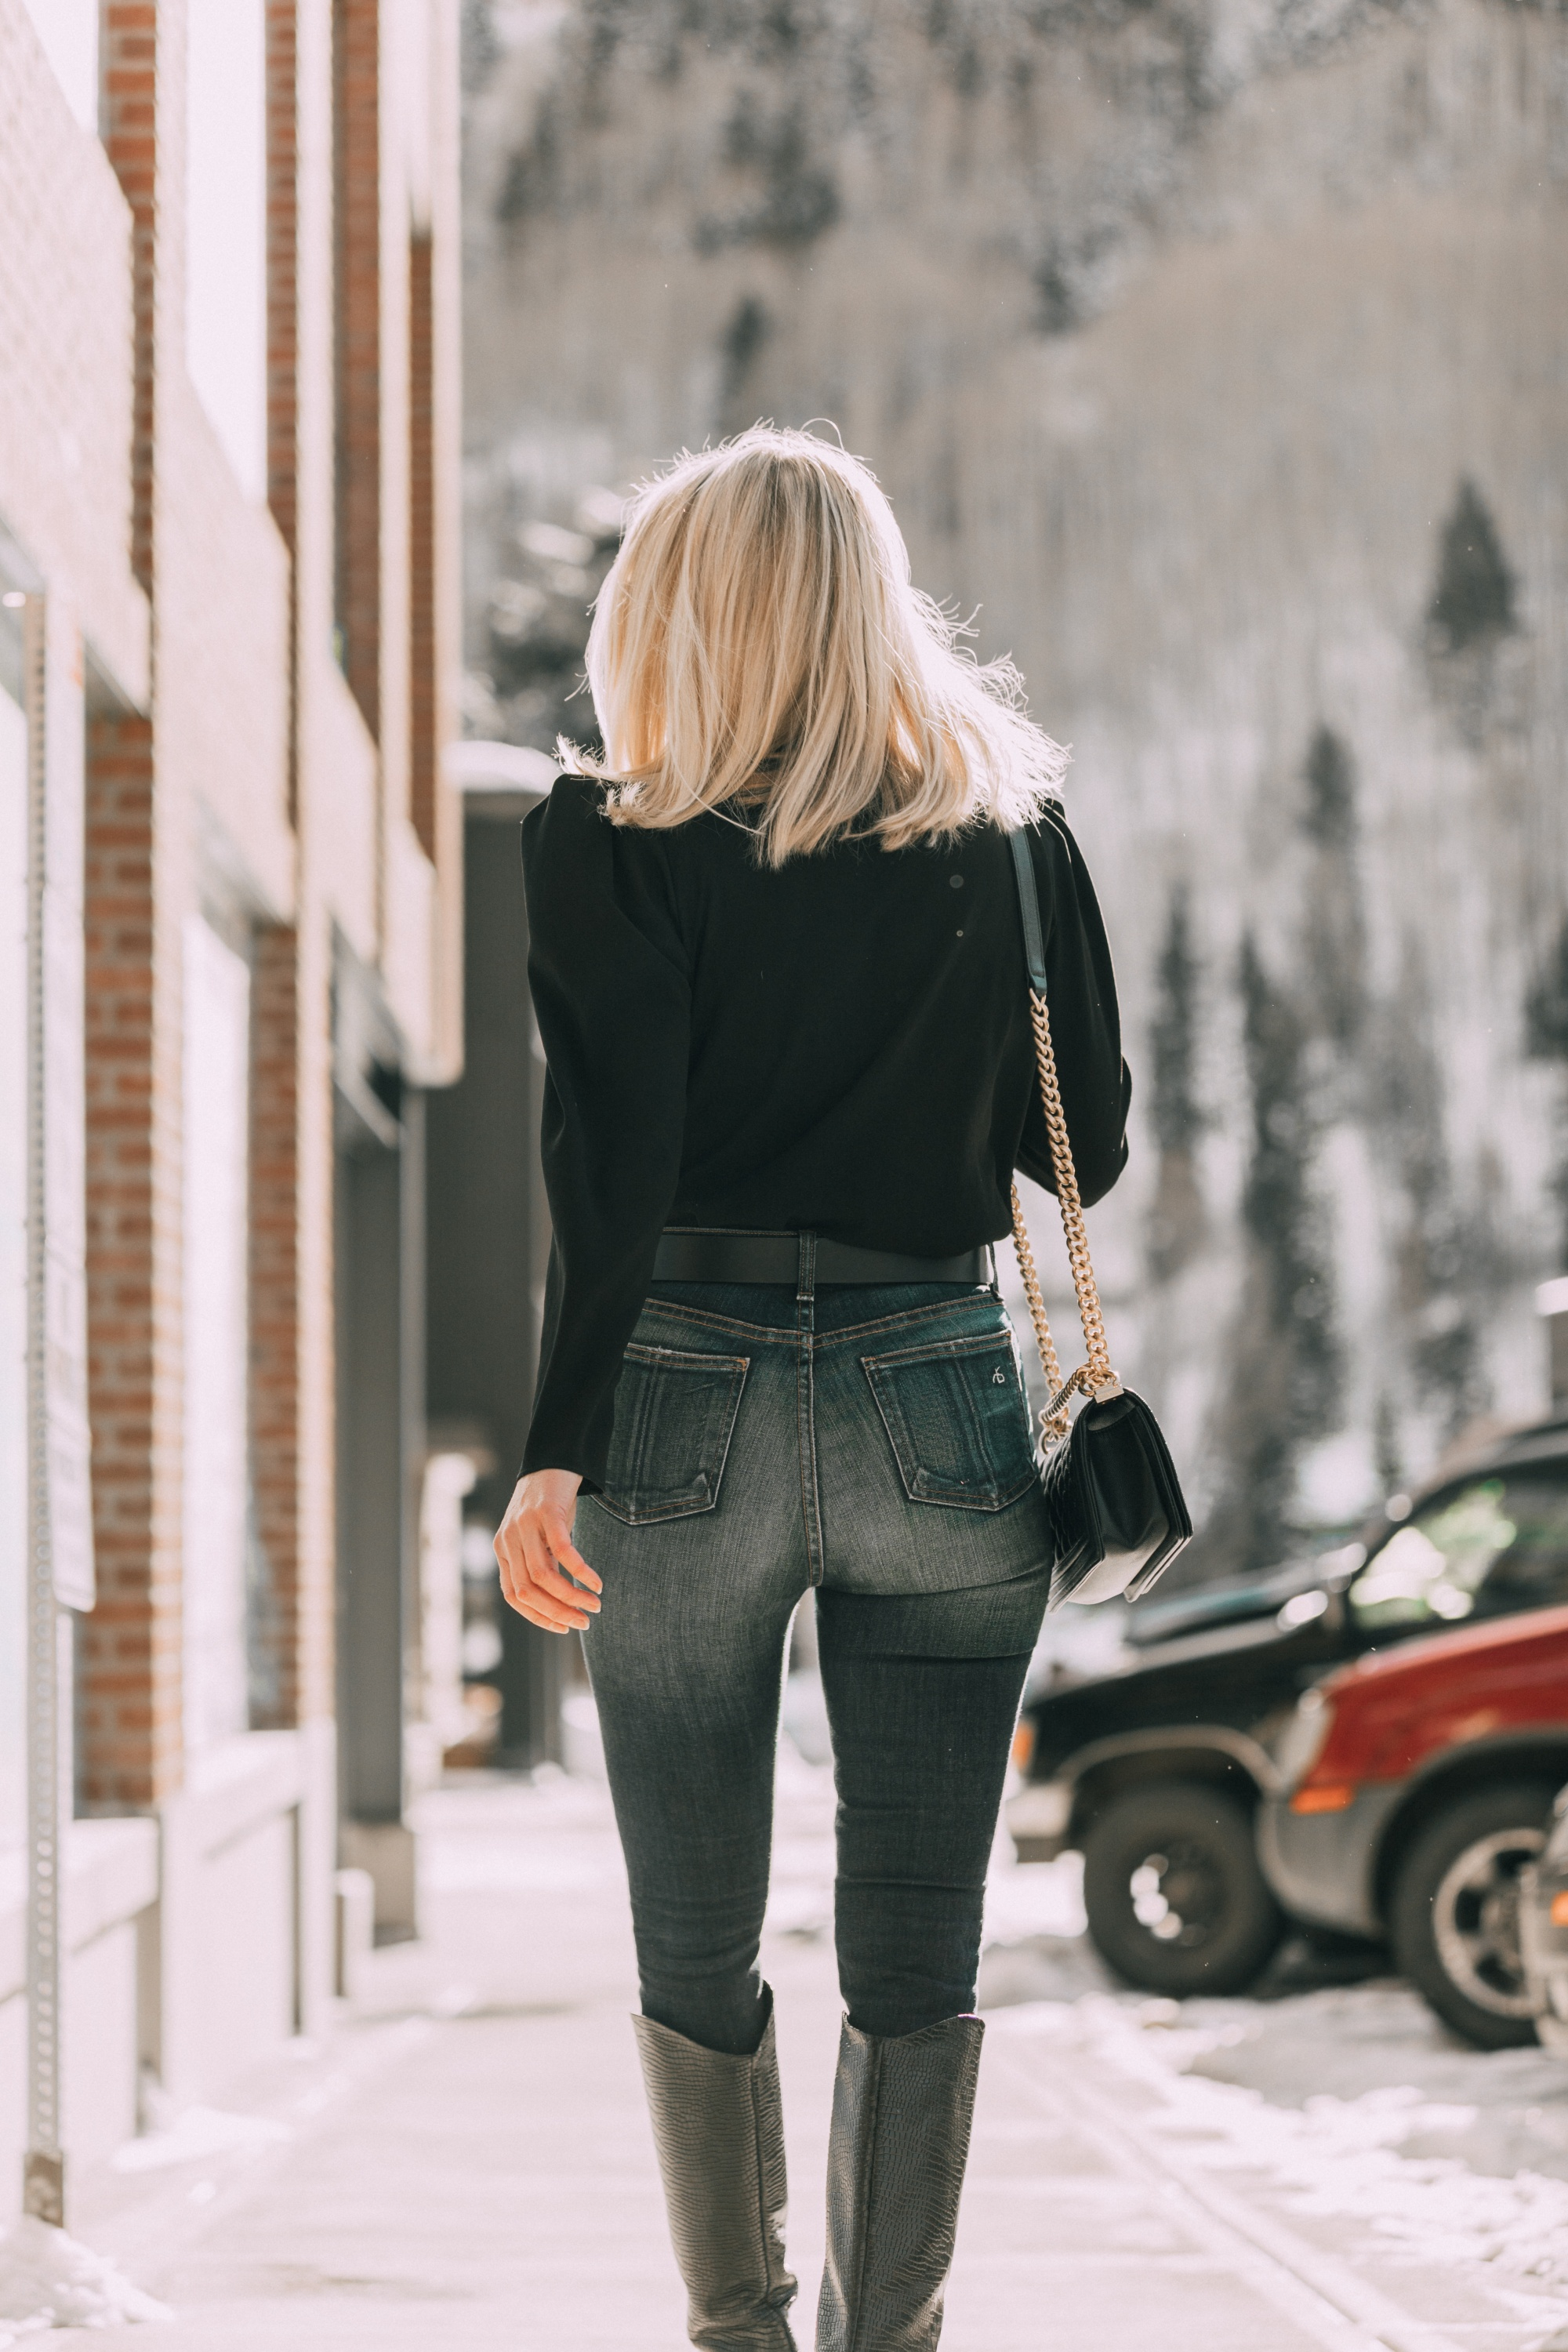 Date Night Outfits, Fashion blogger Erin Busbee of BusbeeStyle.com wearing a black puff sleeve blouse by IRO, ripped skinny jeans by Rag & Bone, Schutz black croc-embossed knee high boots, Chanel boy bag, and Topshop belt in Telluride, Colorado